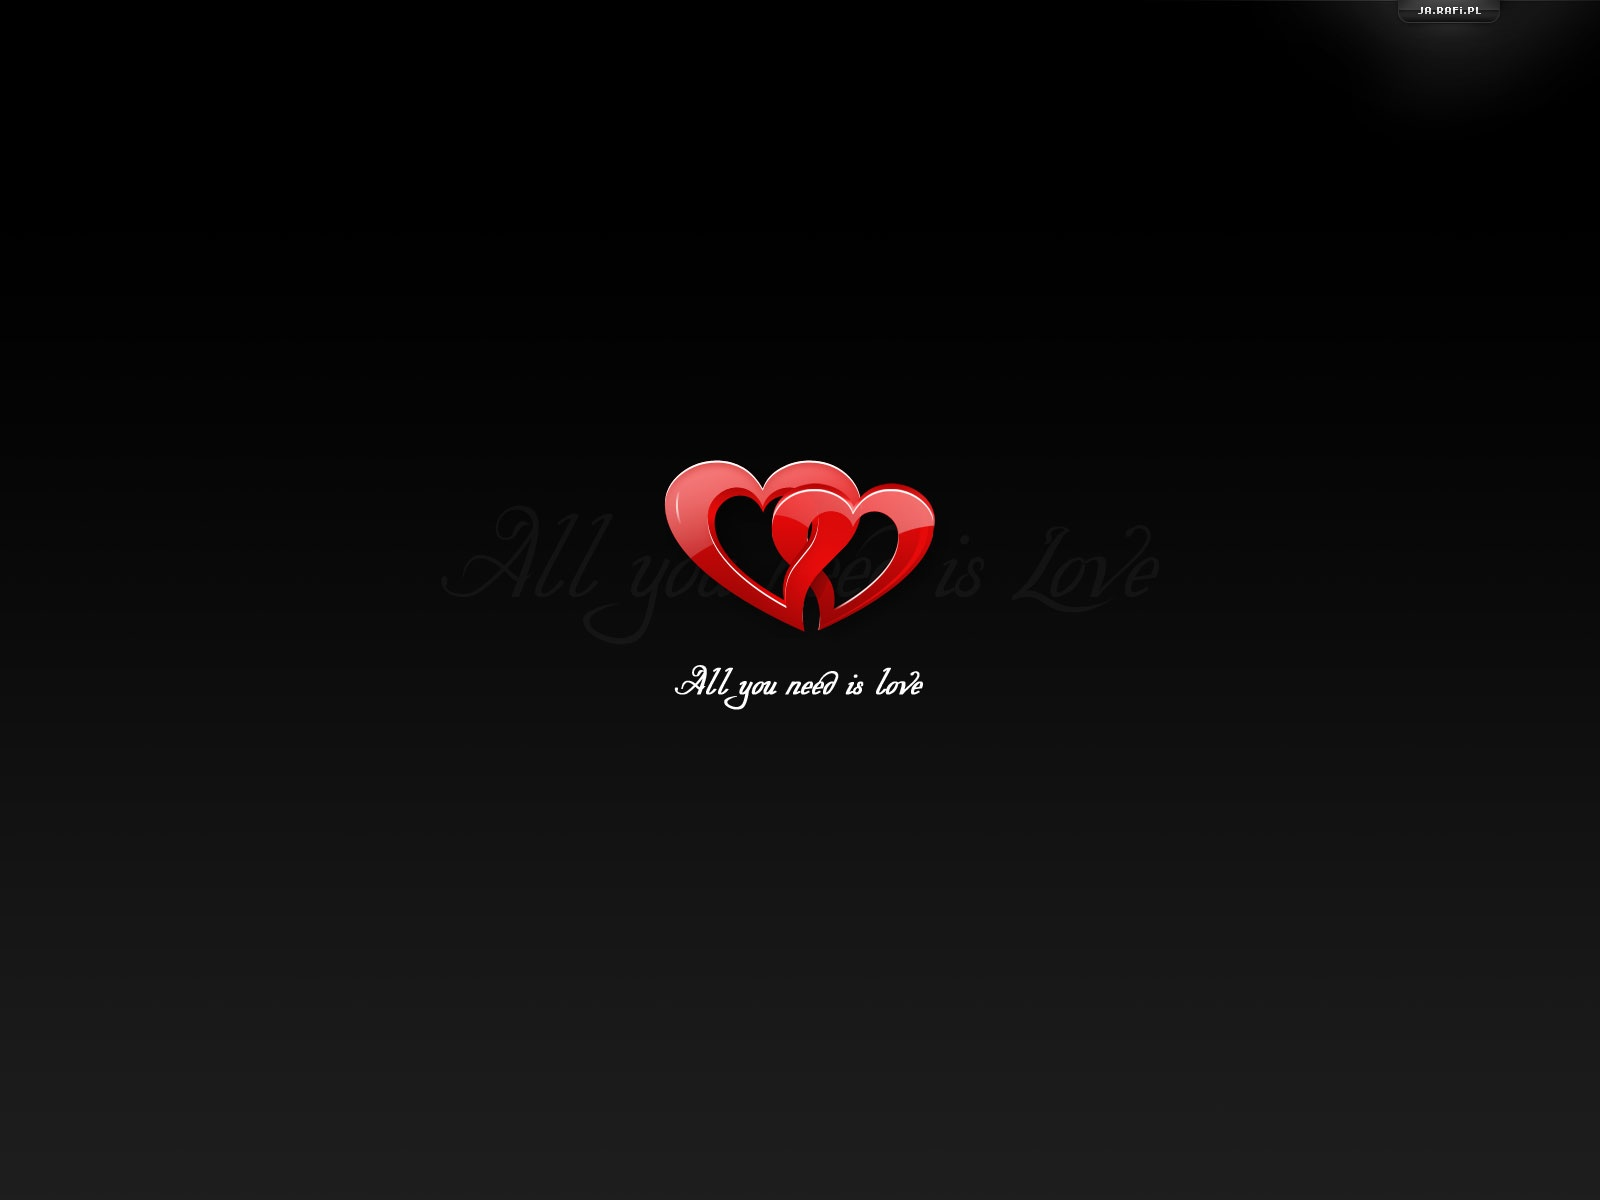 Love You All Wallpaper : 1600x1200 All you need is love desktop Pc and Mac wallpaper